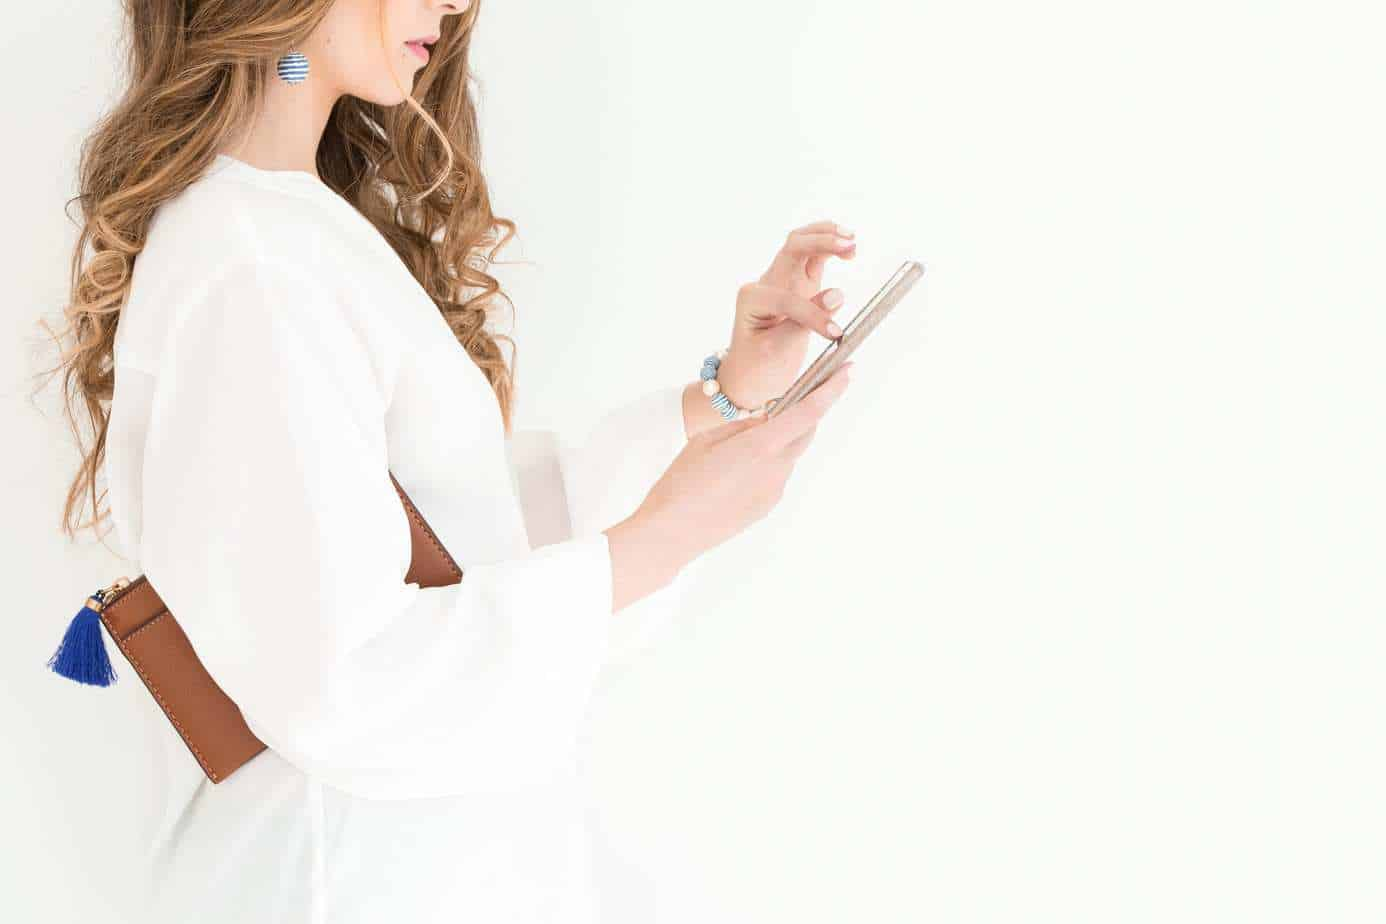 woman on mobile phone standing connecting with the outer world is why other people's opinion influences us